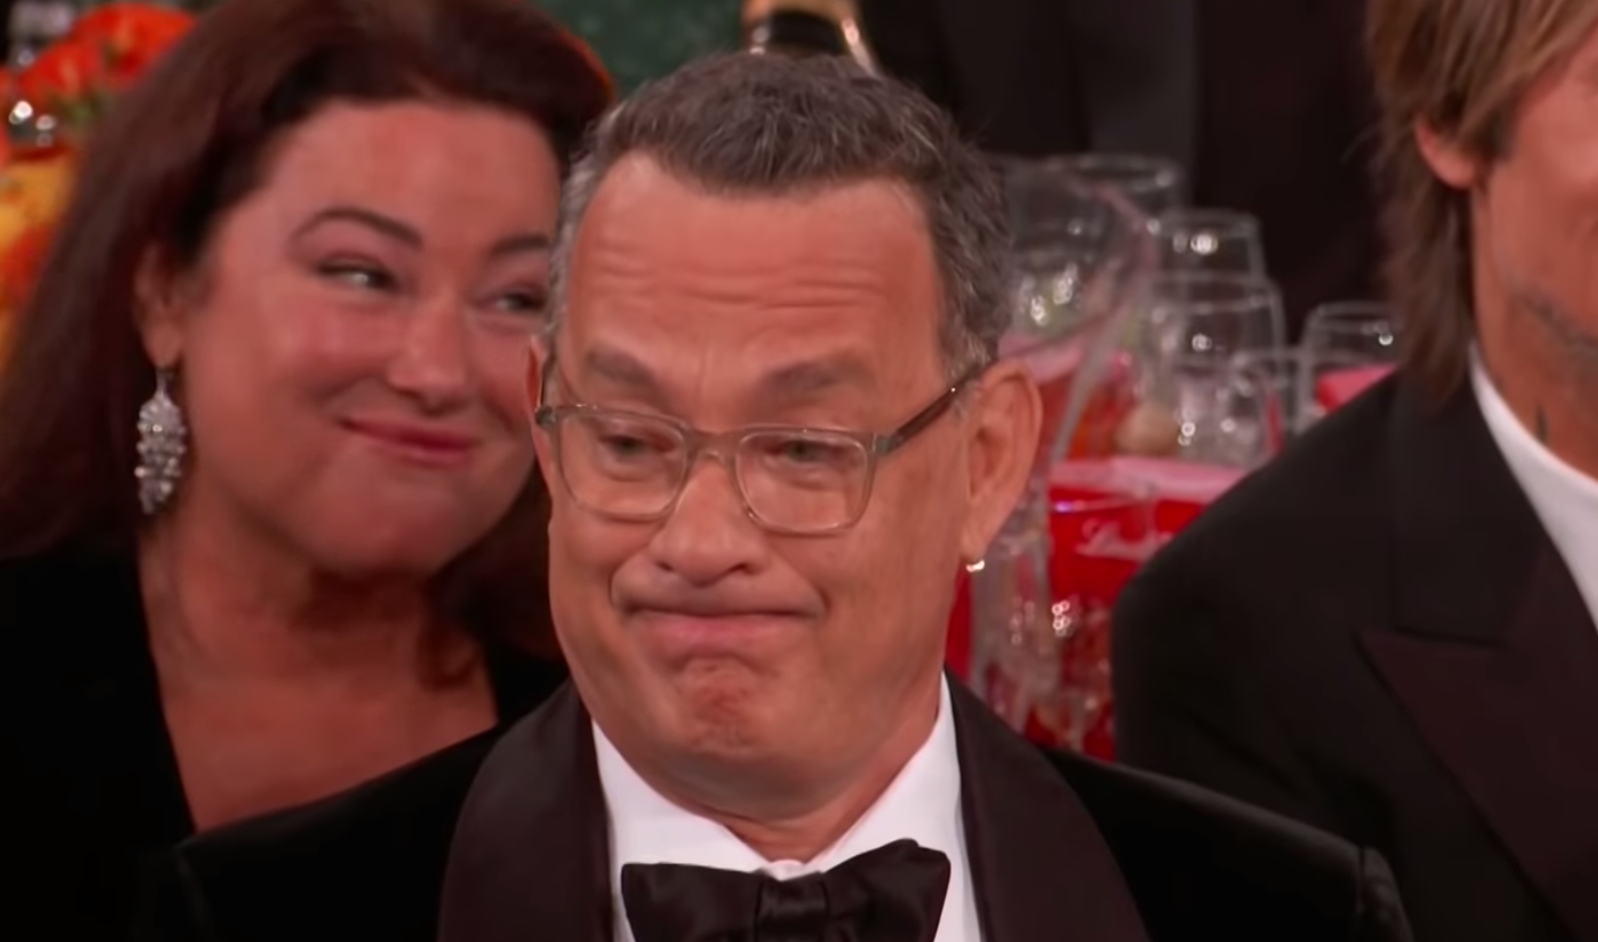 Here Are The Best Celebrity Reactions To Ricky Gervais's Scathing Jokes At The Golden Globes